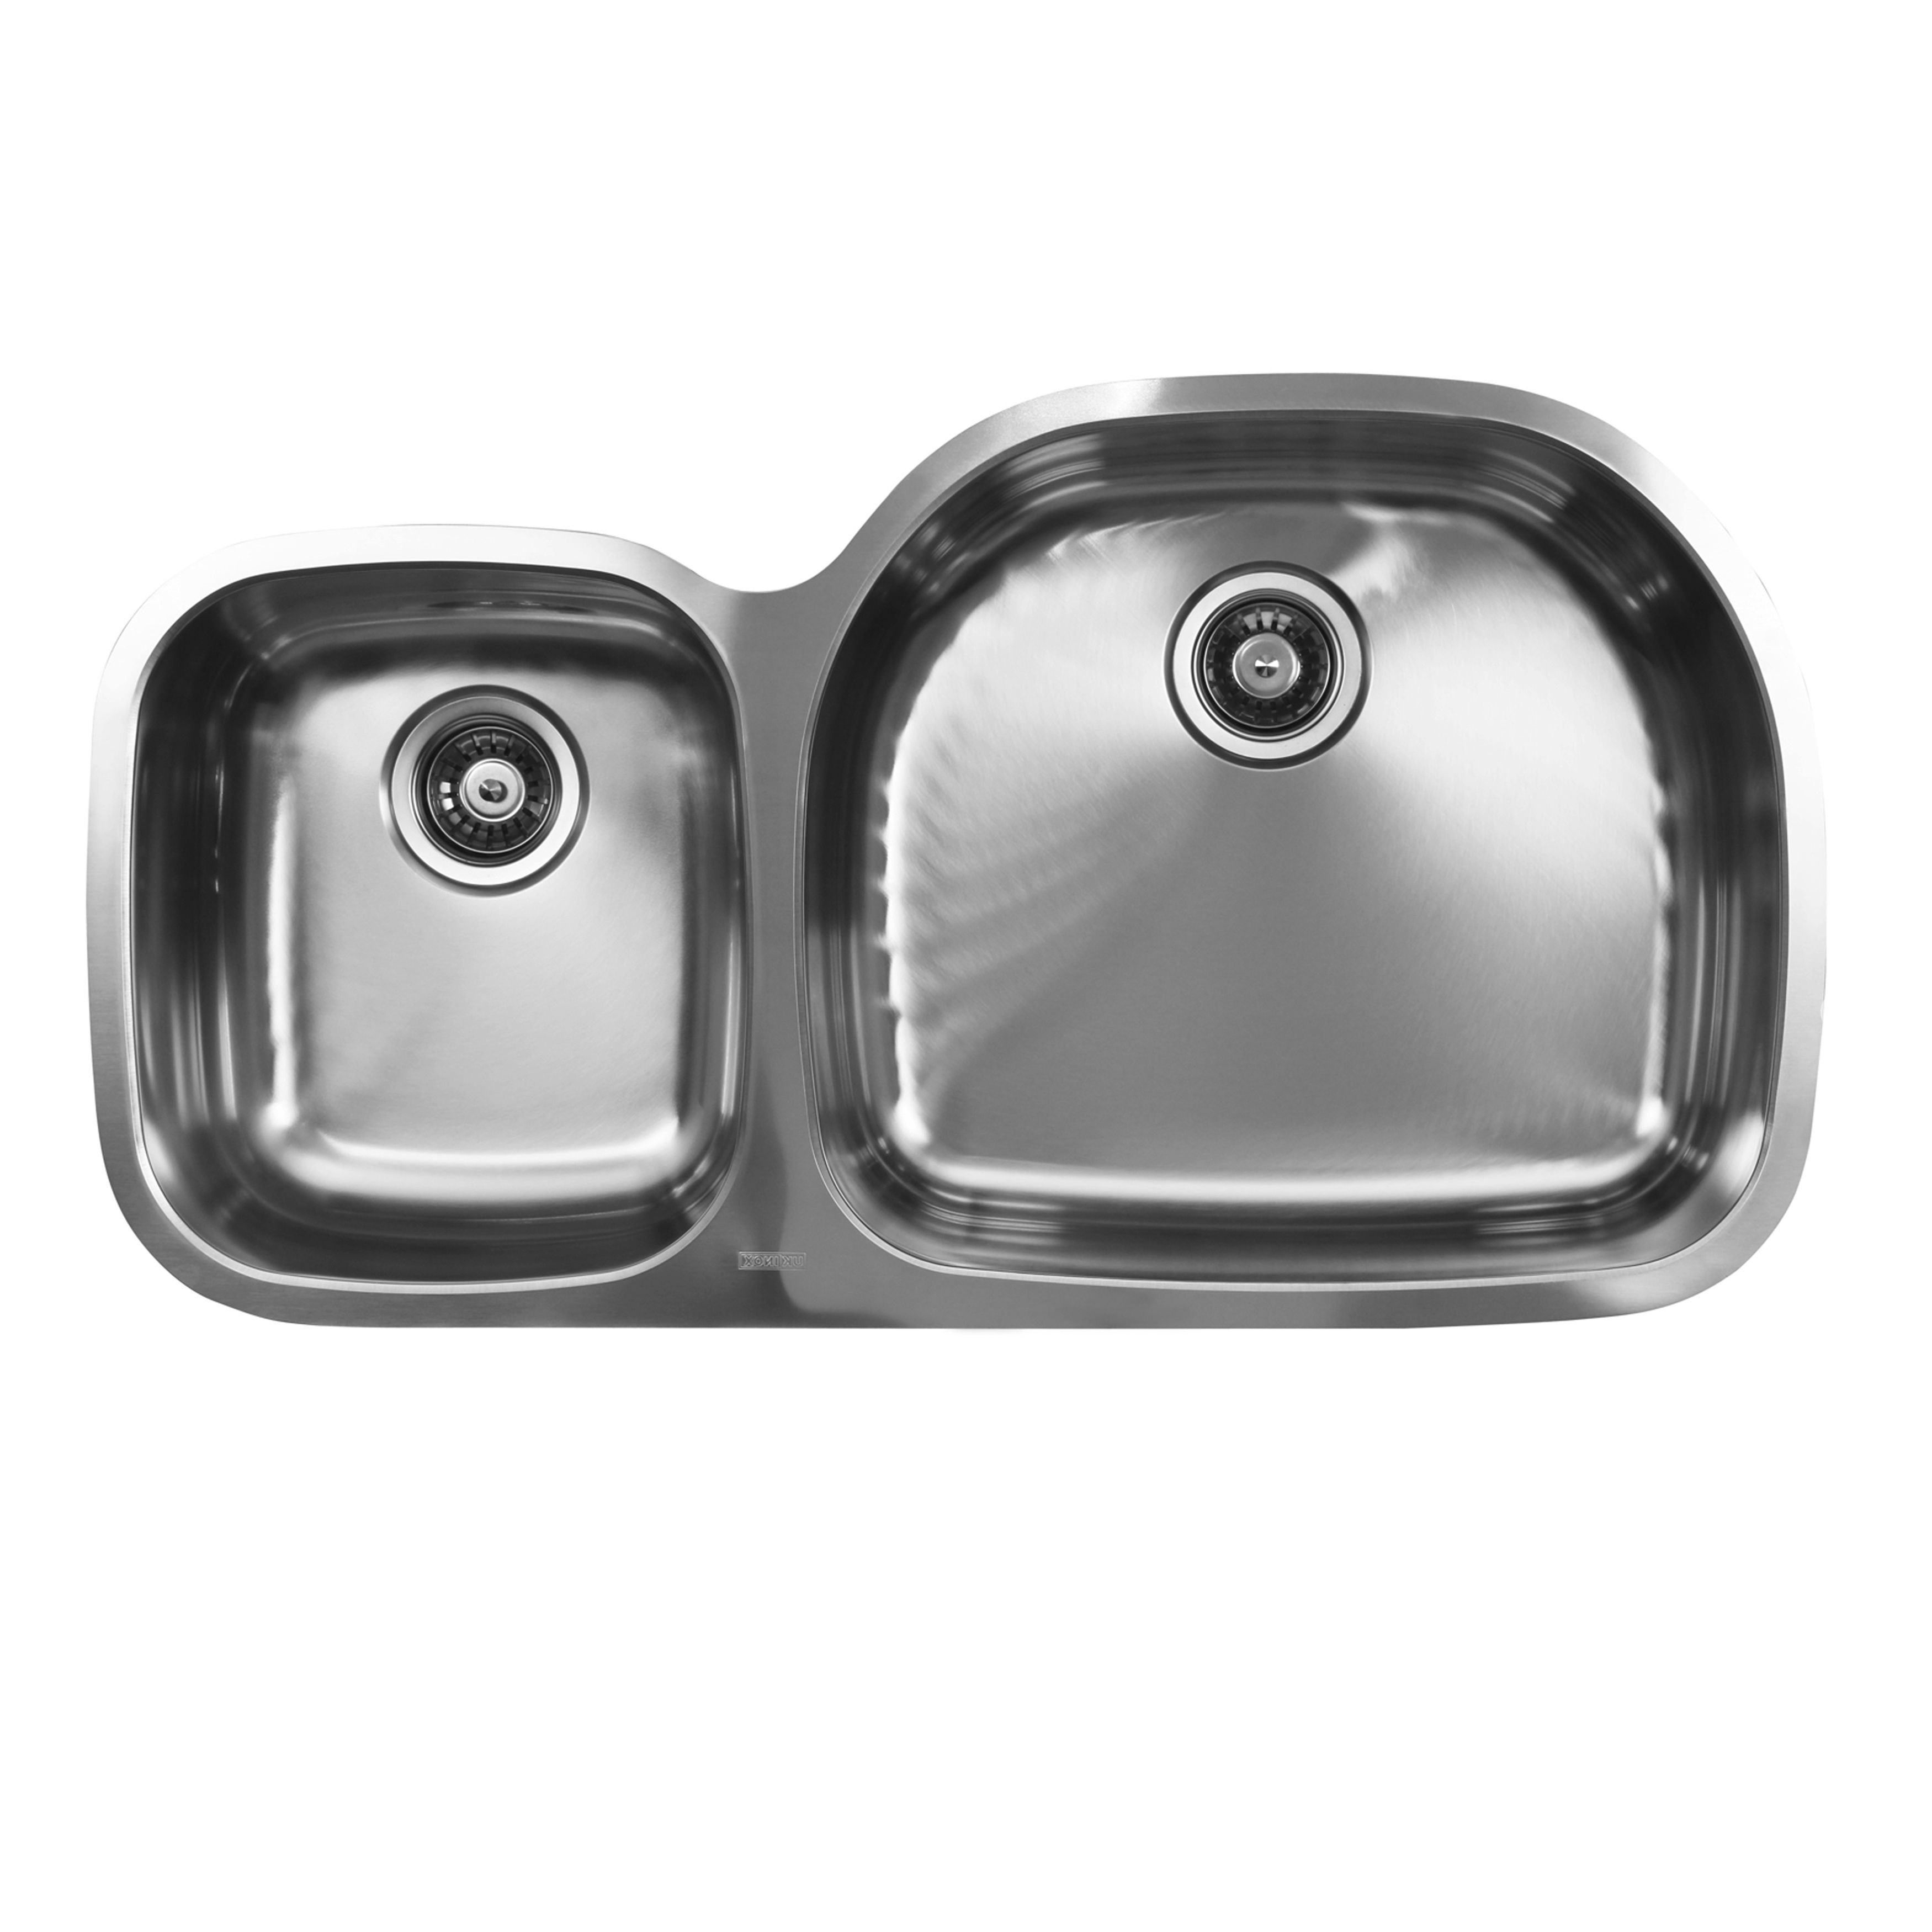 Ukinox D537 60 40 10r 60 40 Double Basin Stainless Steel